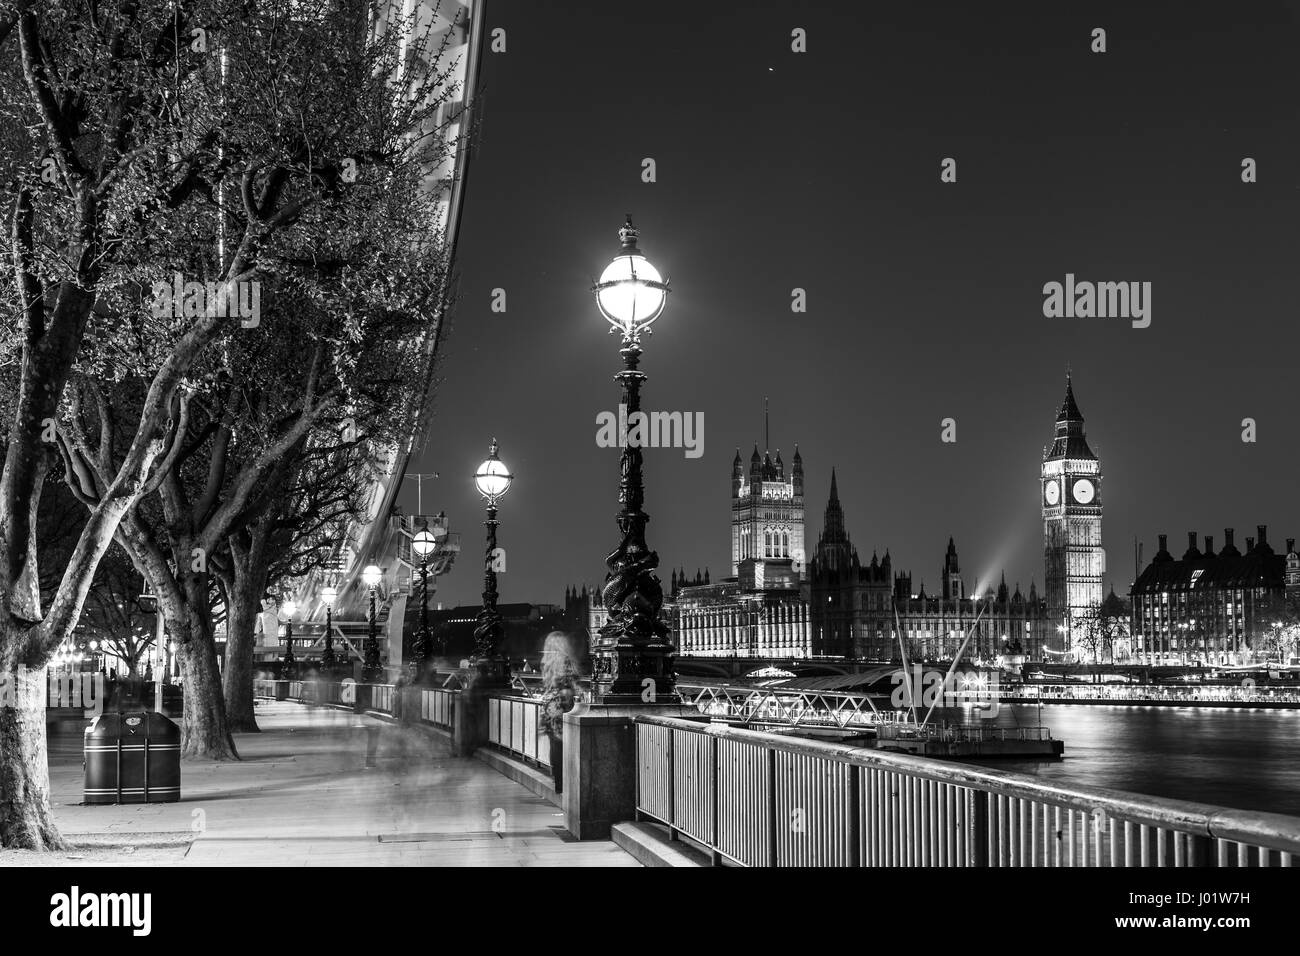 London Eye, Big Ben and Houses of parliament in London, UK. - Stock Image